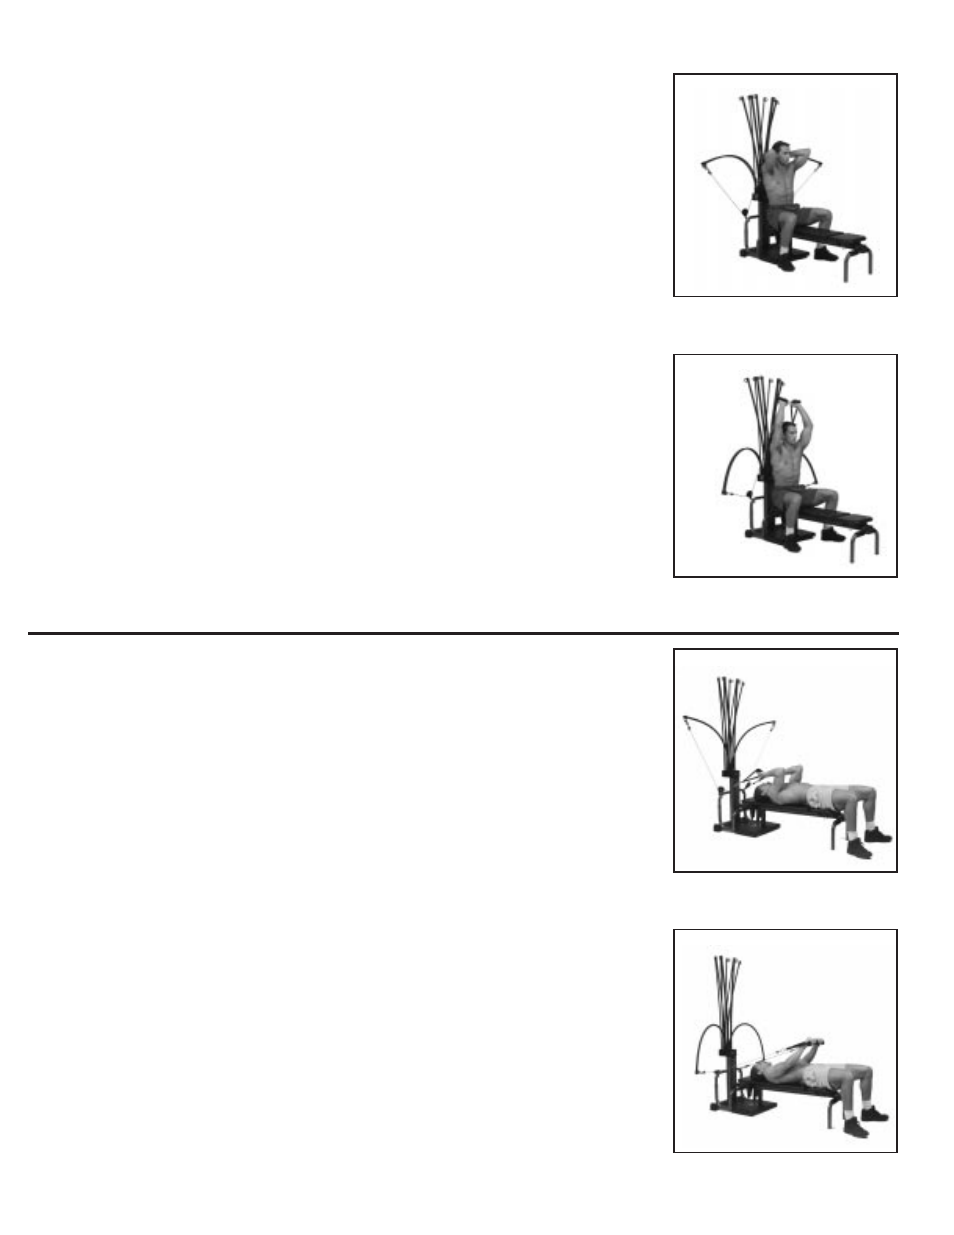 Label Muscles Of The Arms Manual Guide